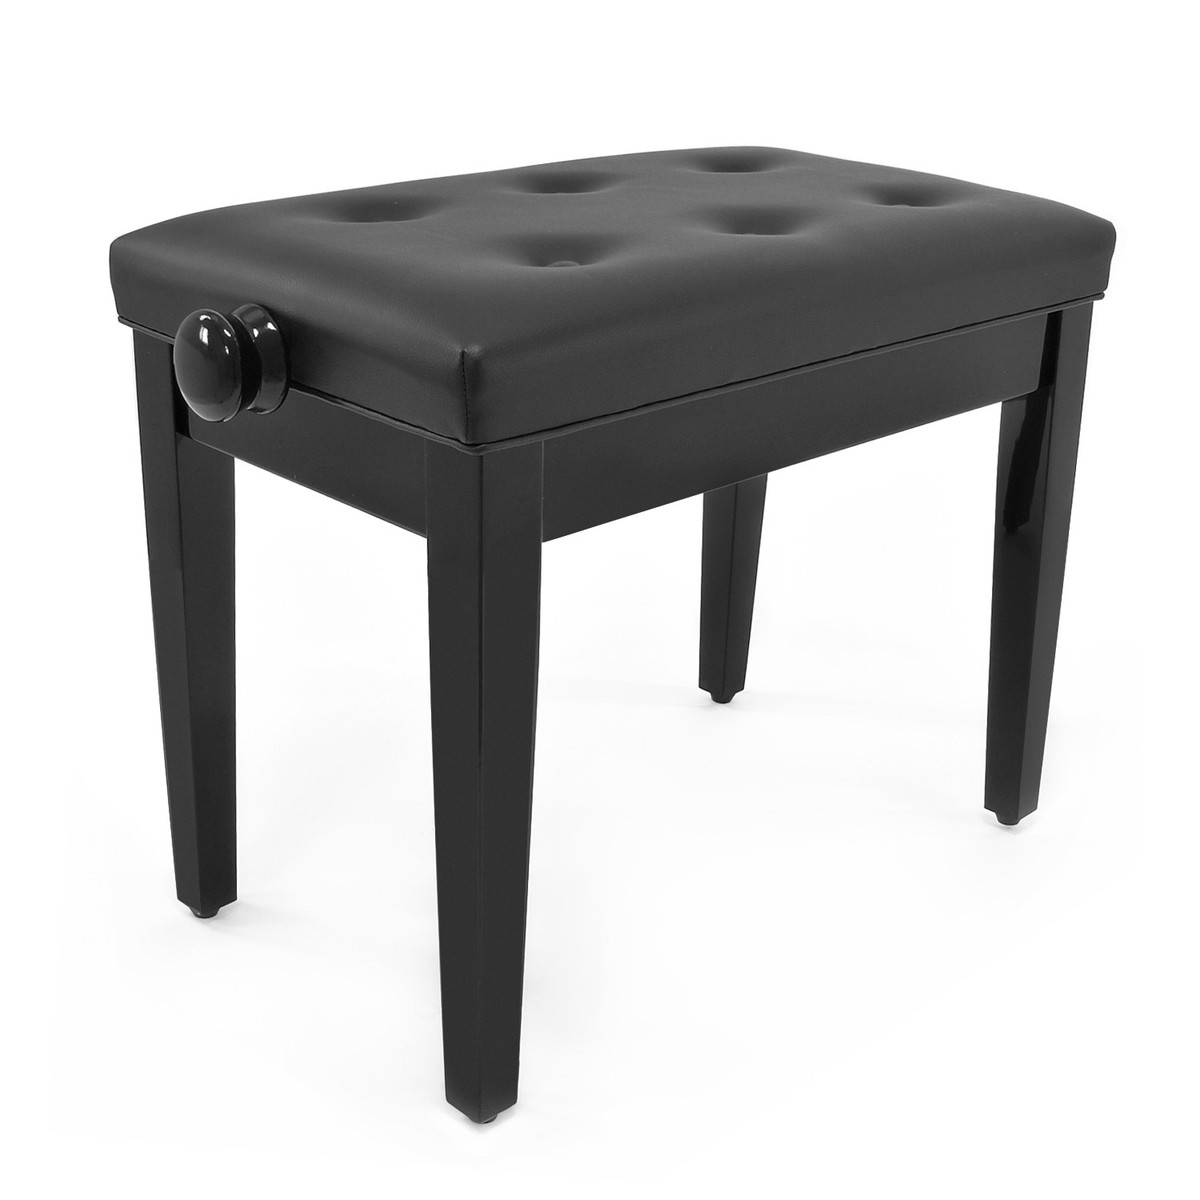 Adjustable piano chair - Deluxe Piano Stool By Gear4music Loading Zoom